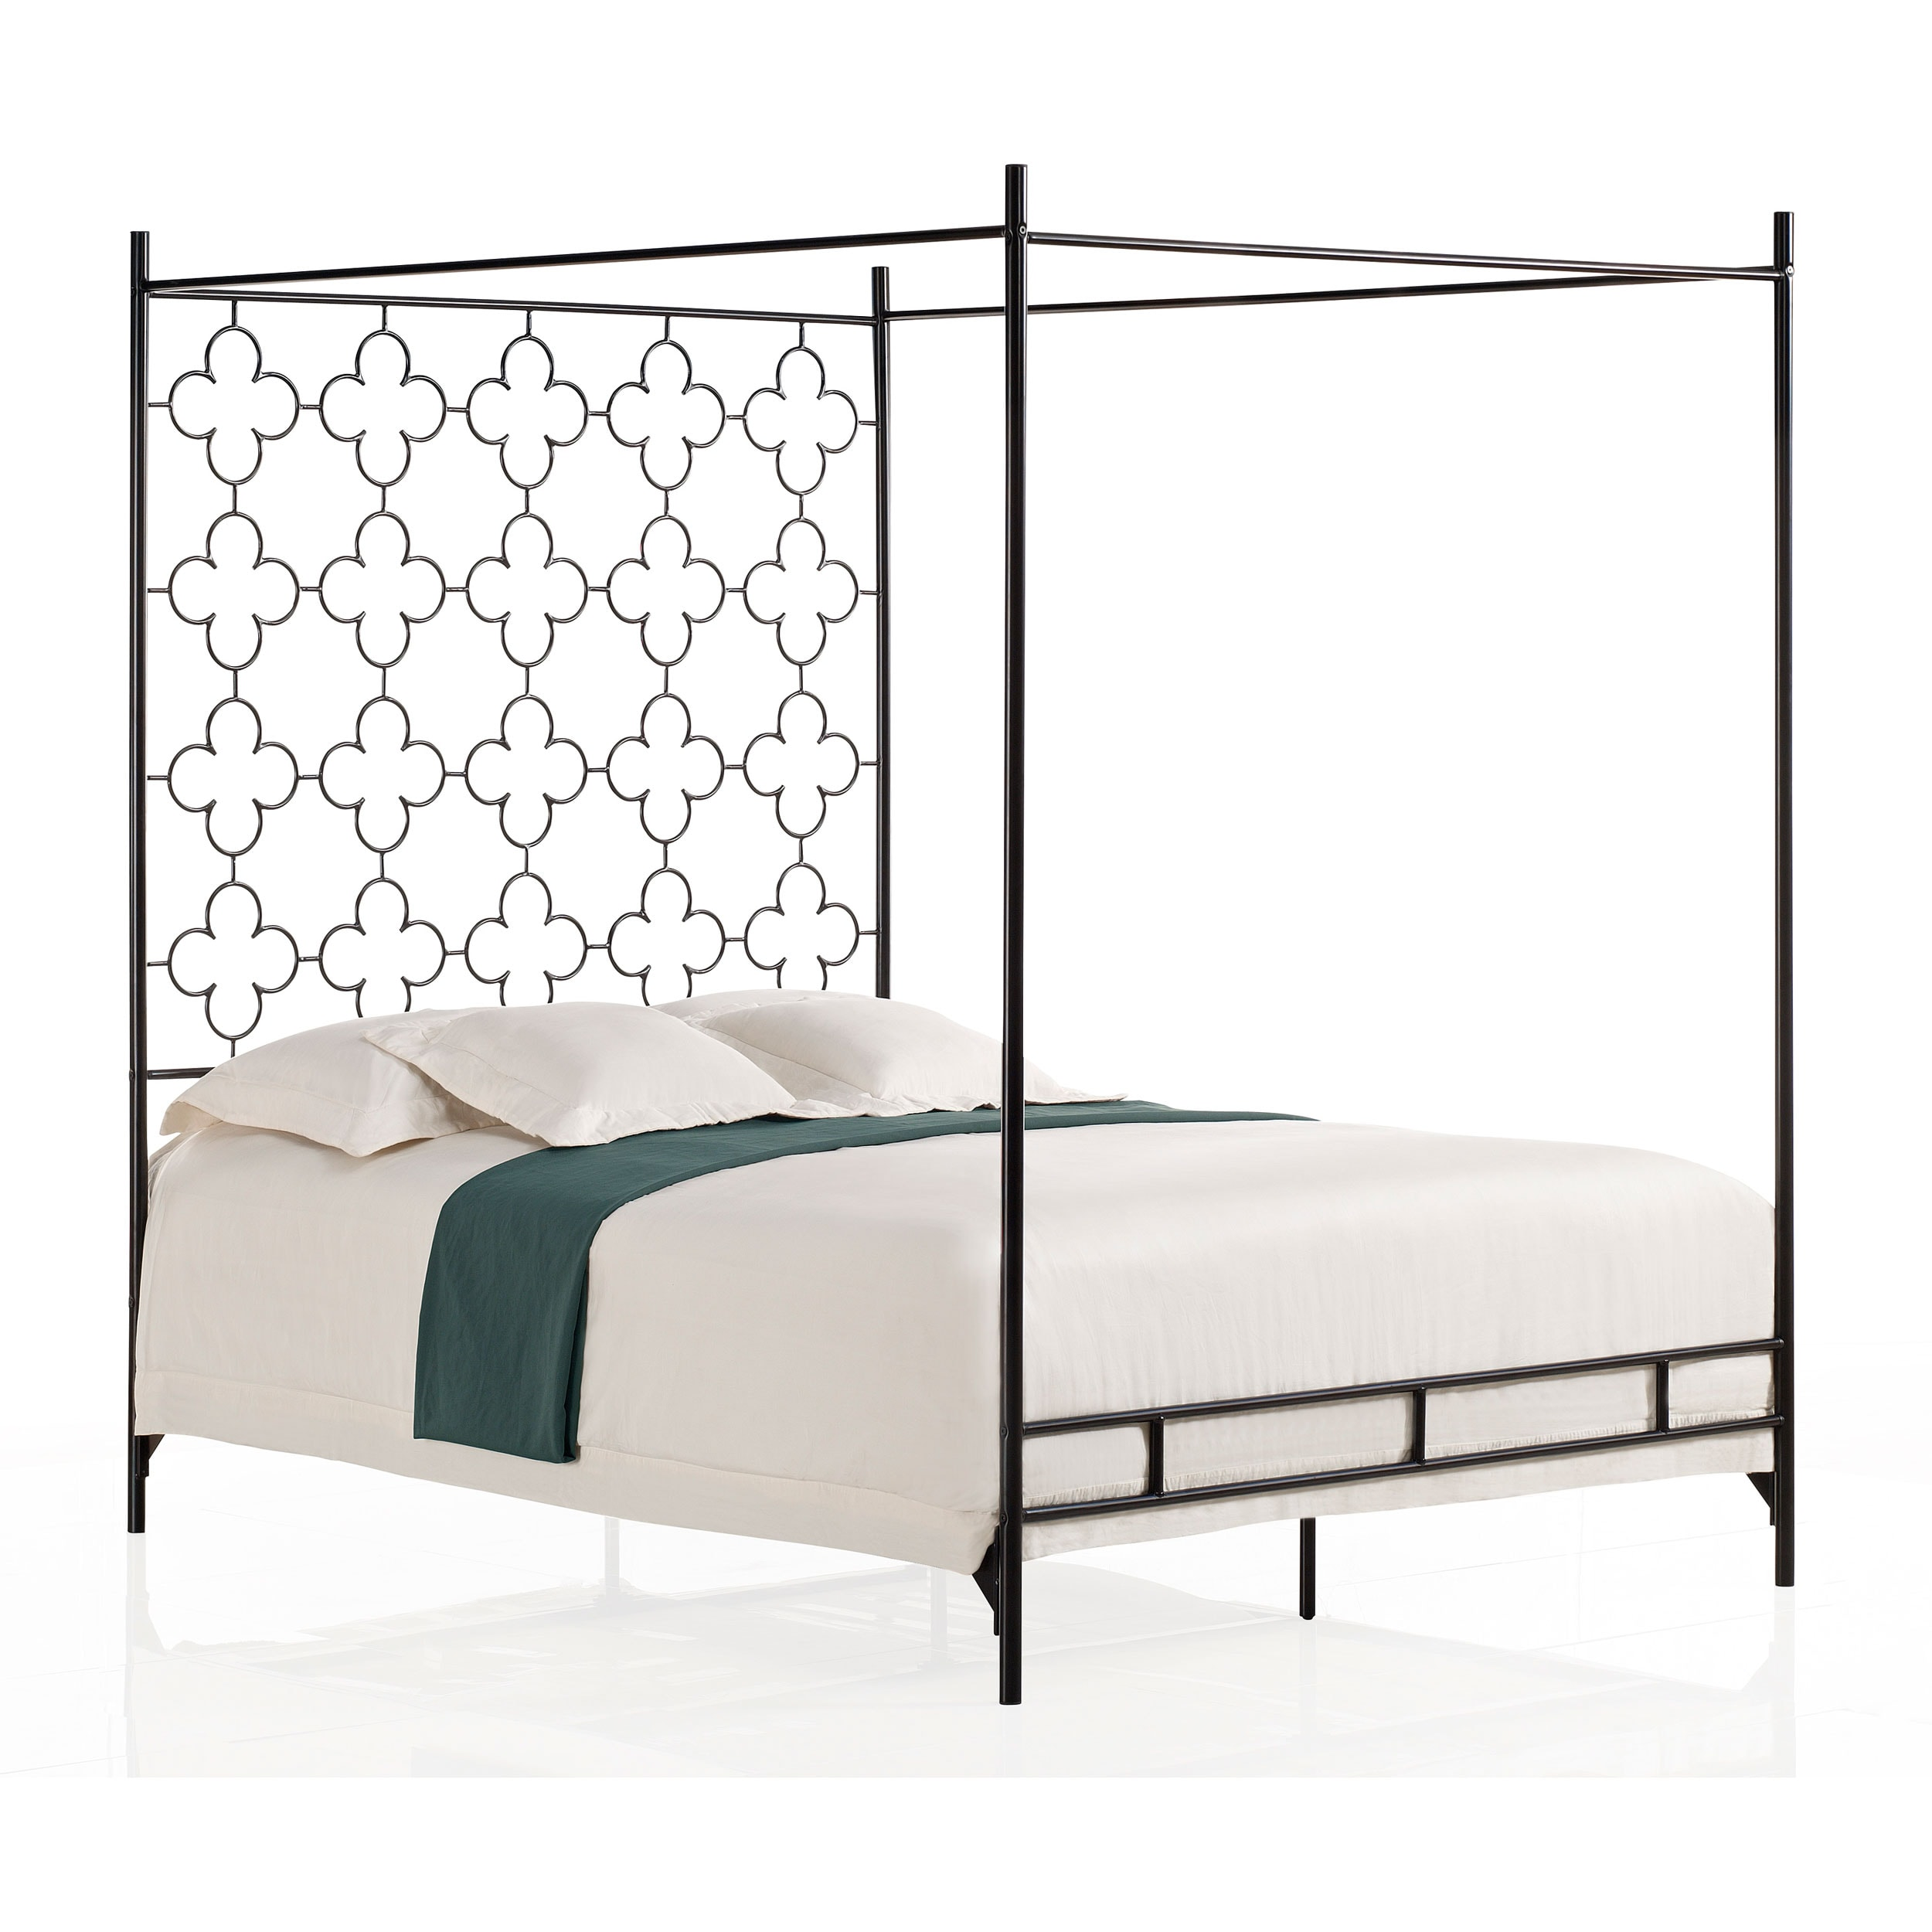 quatrefoil queen canopy bed free shipping today overstockcom 80004545 - Marble Canopy 2015